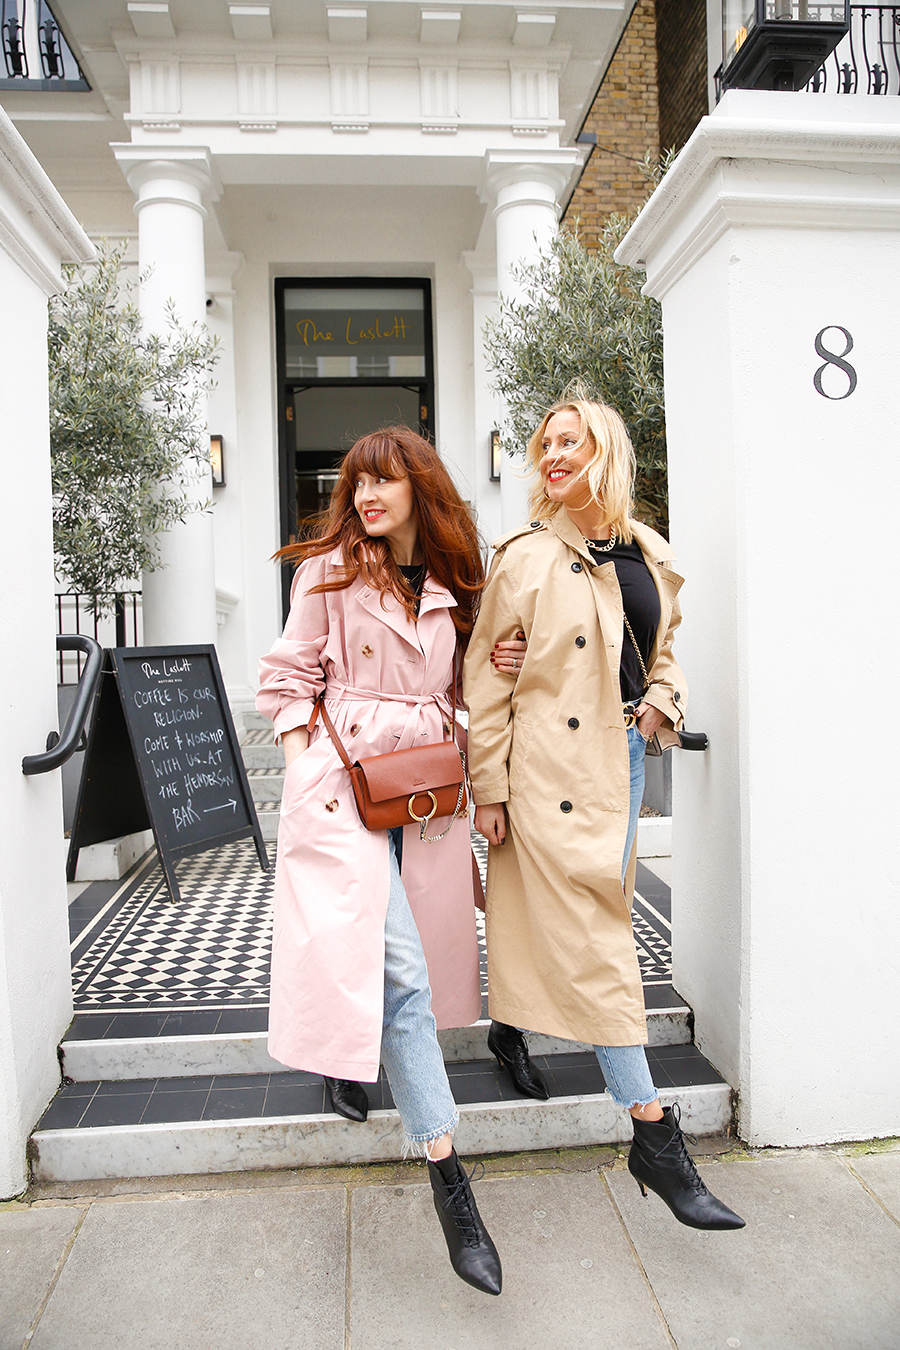 Belle and bunty London fashion bloggers influencers stylists trench coat shopping edit